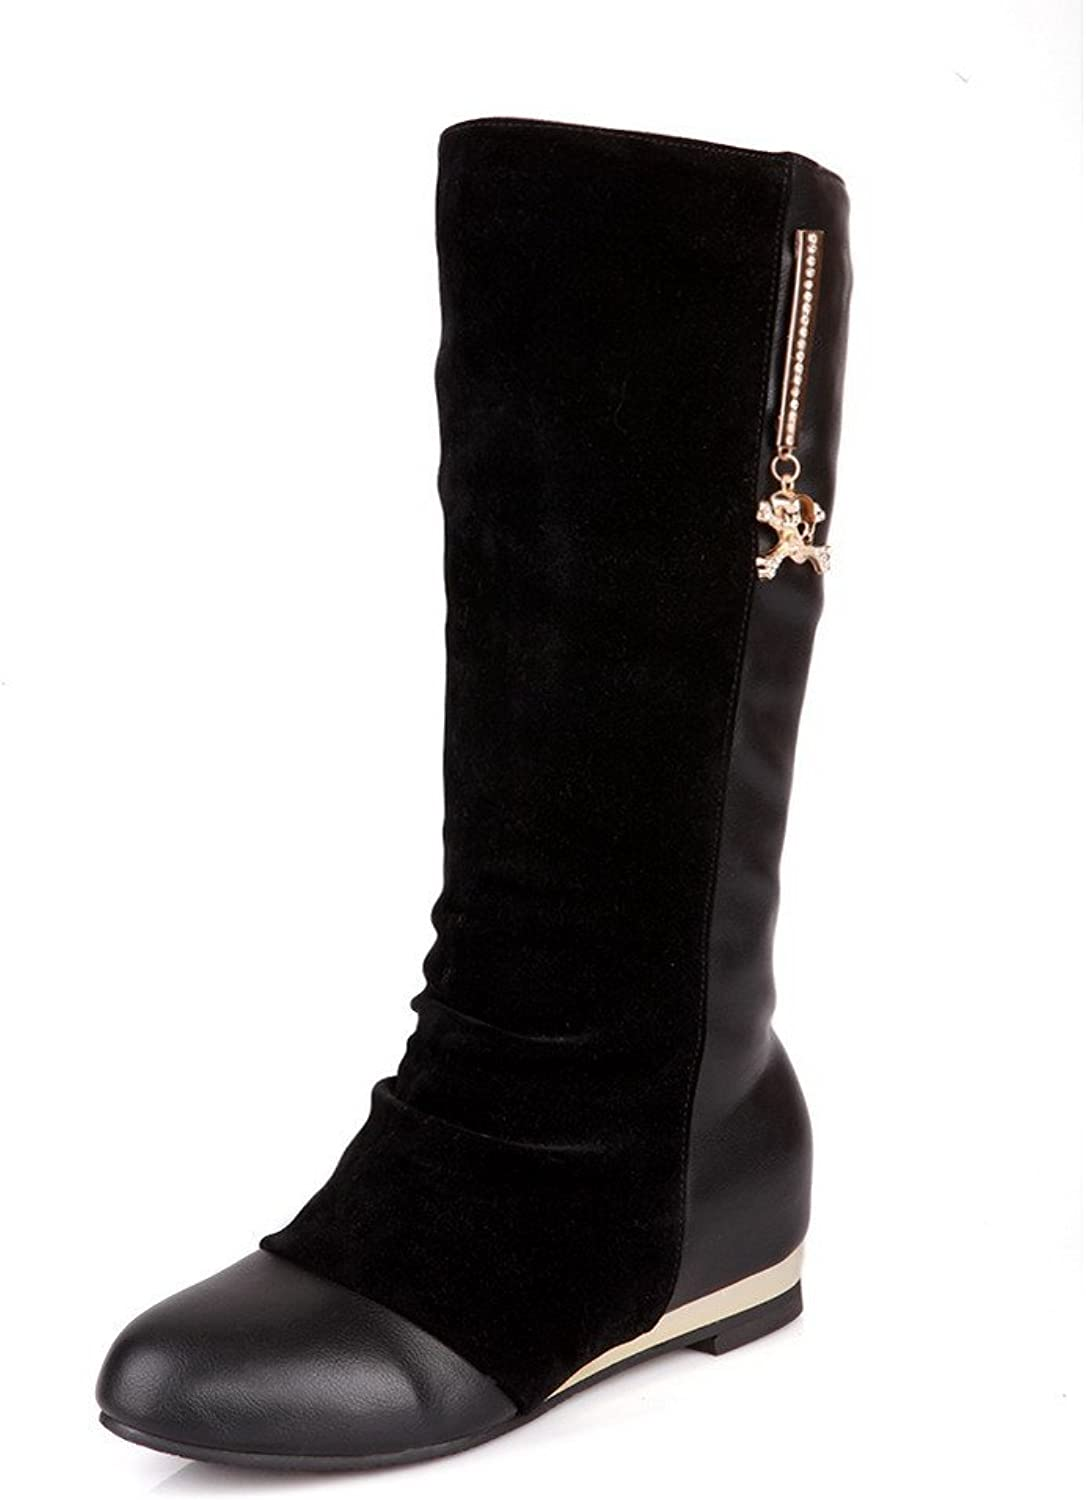 WeenFashion Womens Round Toe Kitten Heels Frosted Solid Boot with Glass Diamond, Black, 7 B(M) US